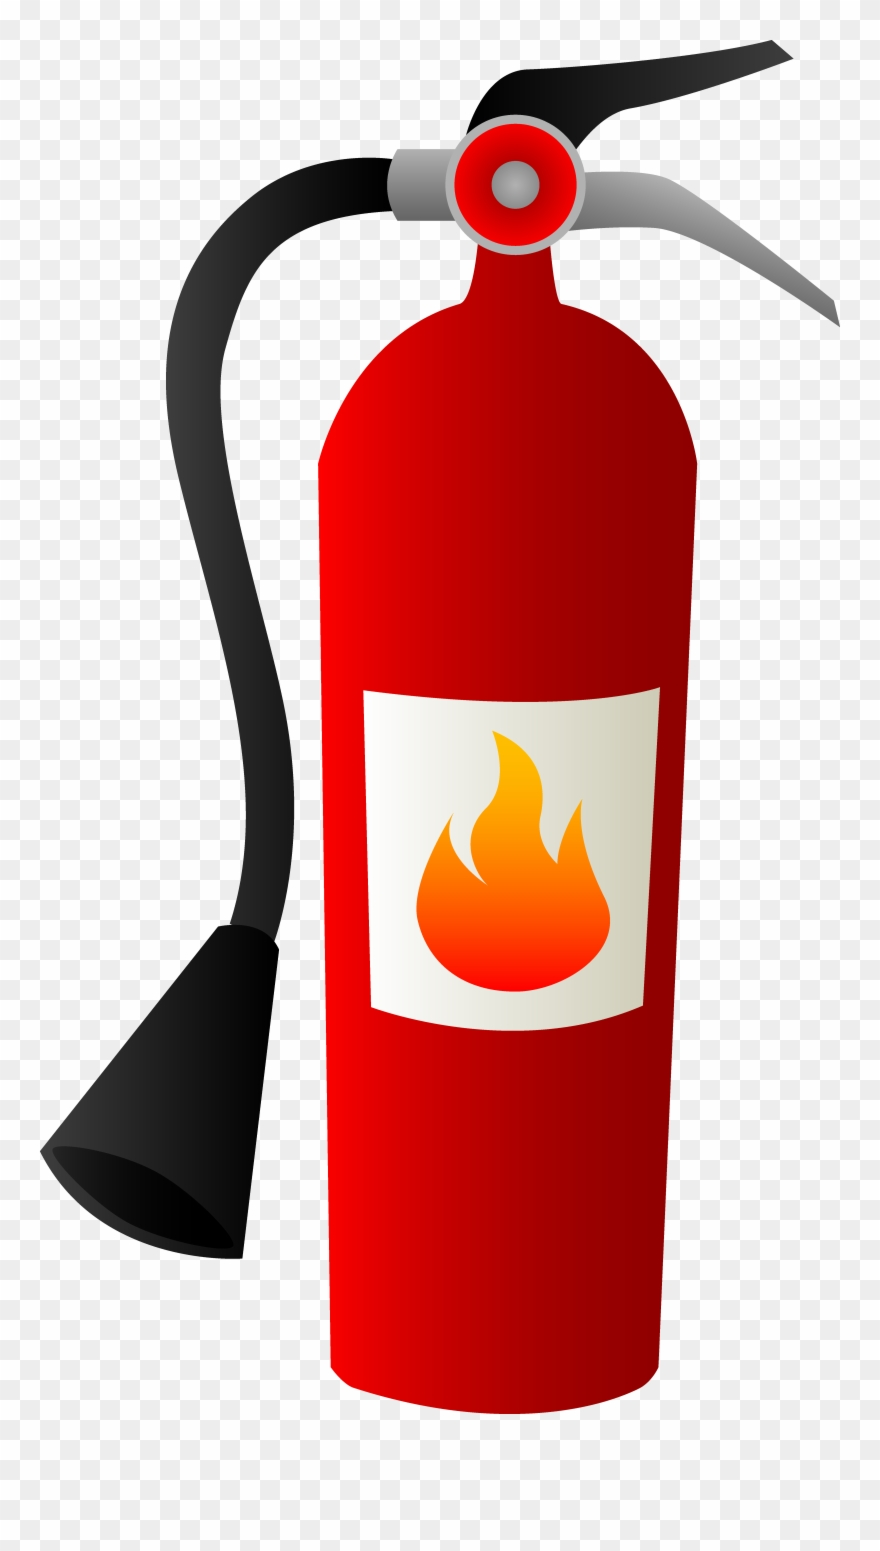 Kitchen Fire Safety Clip Art.